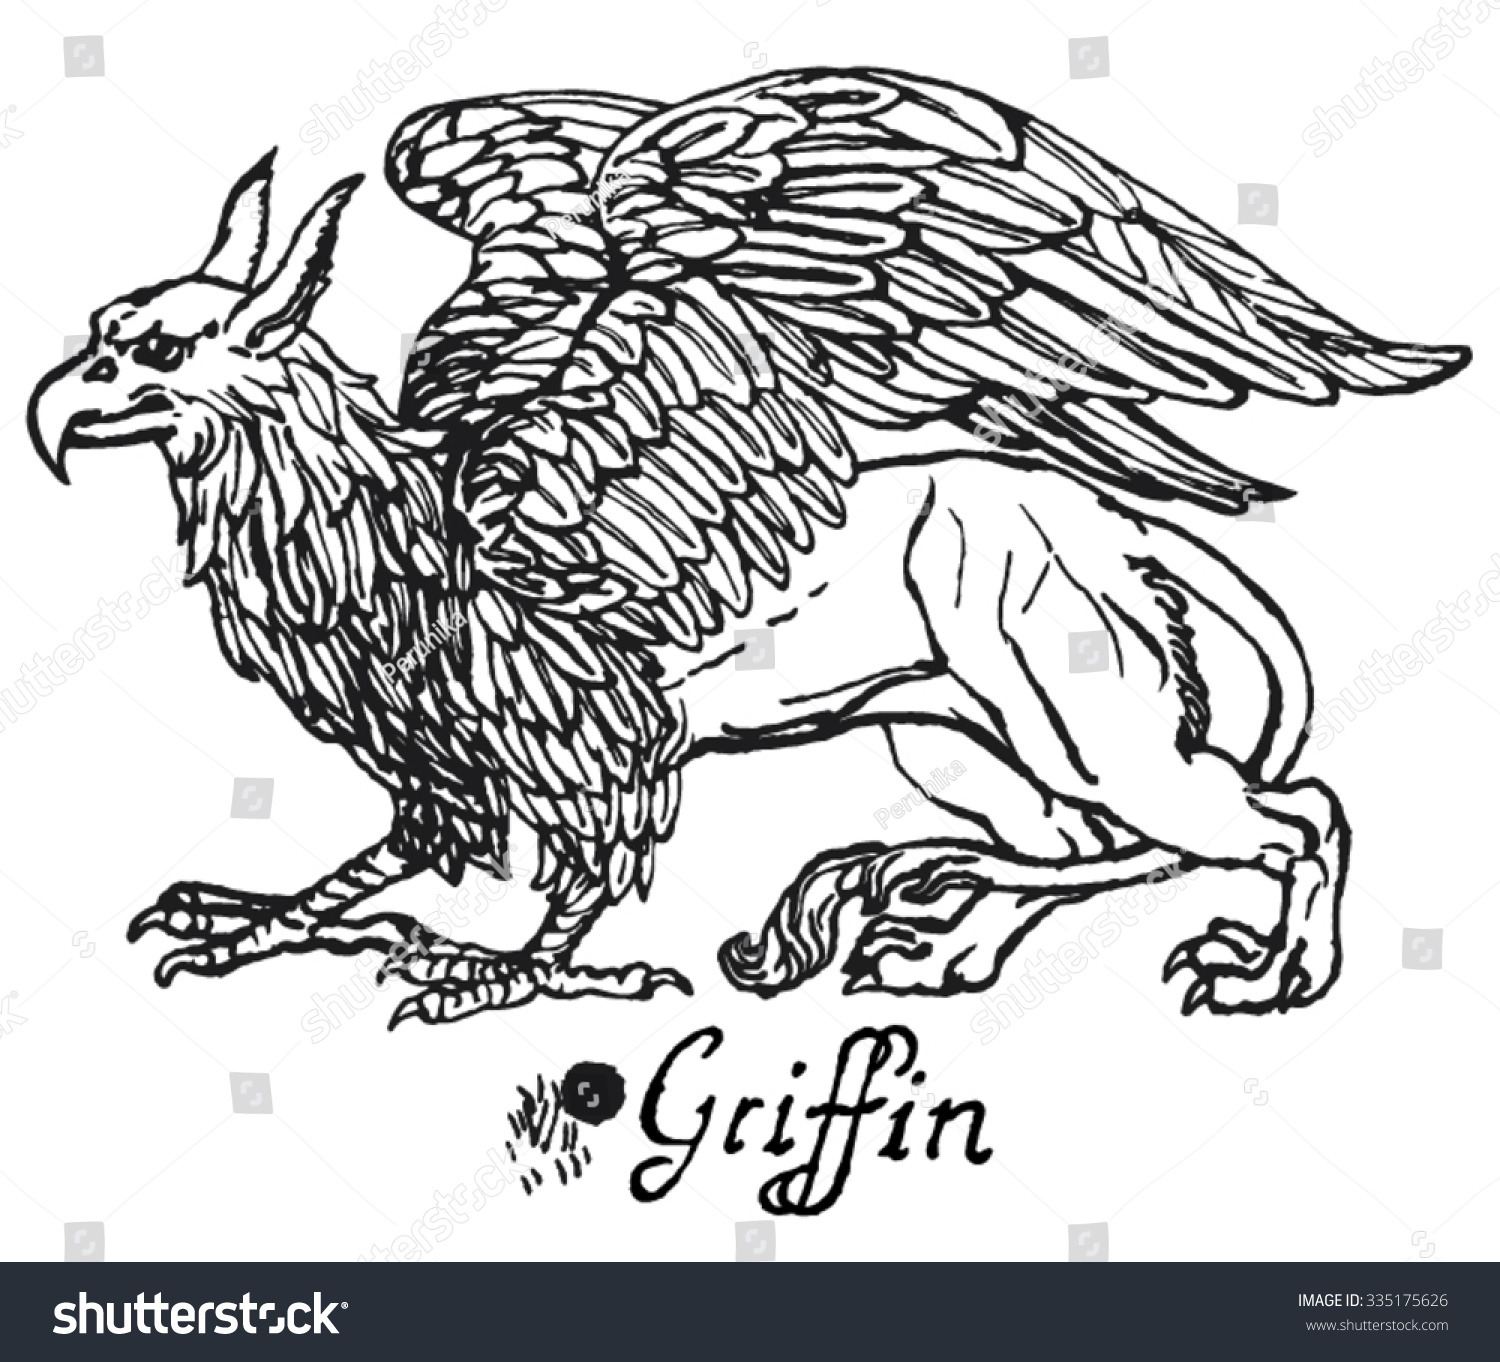 griffin griffon or gryphon with hand drawn brush title vector illustration in